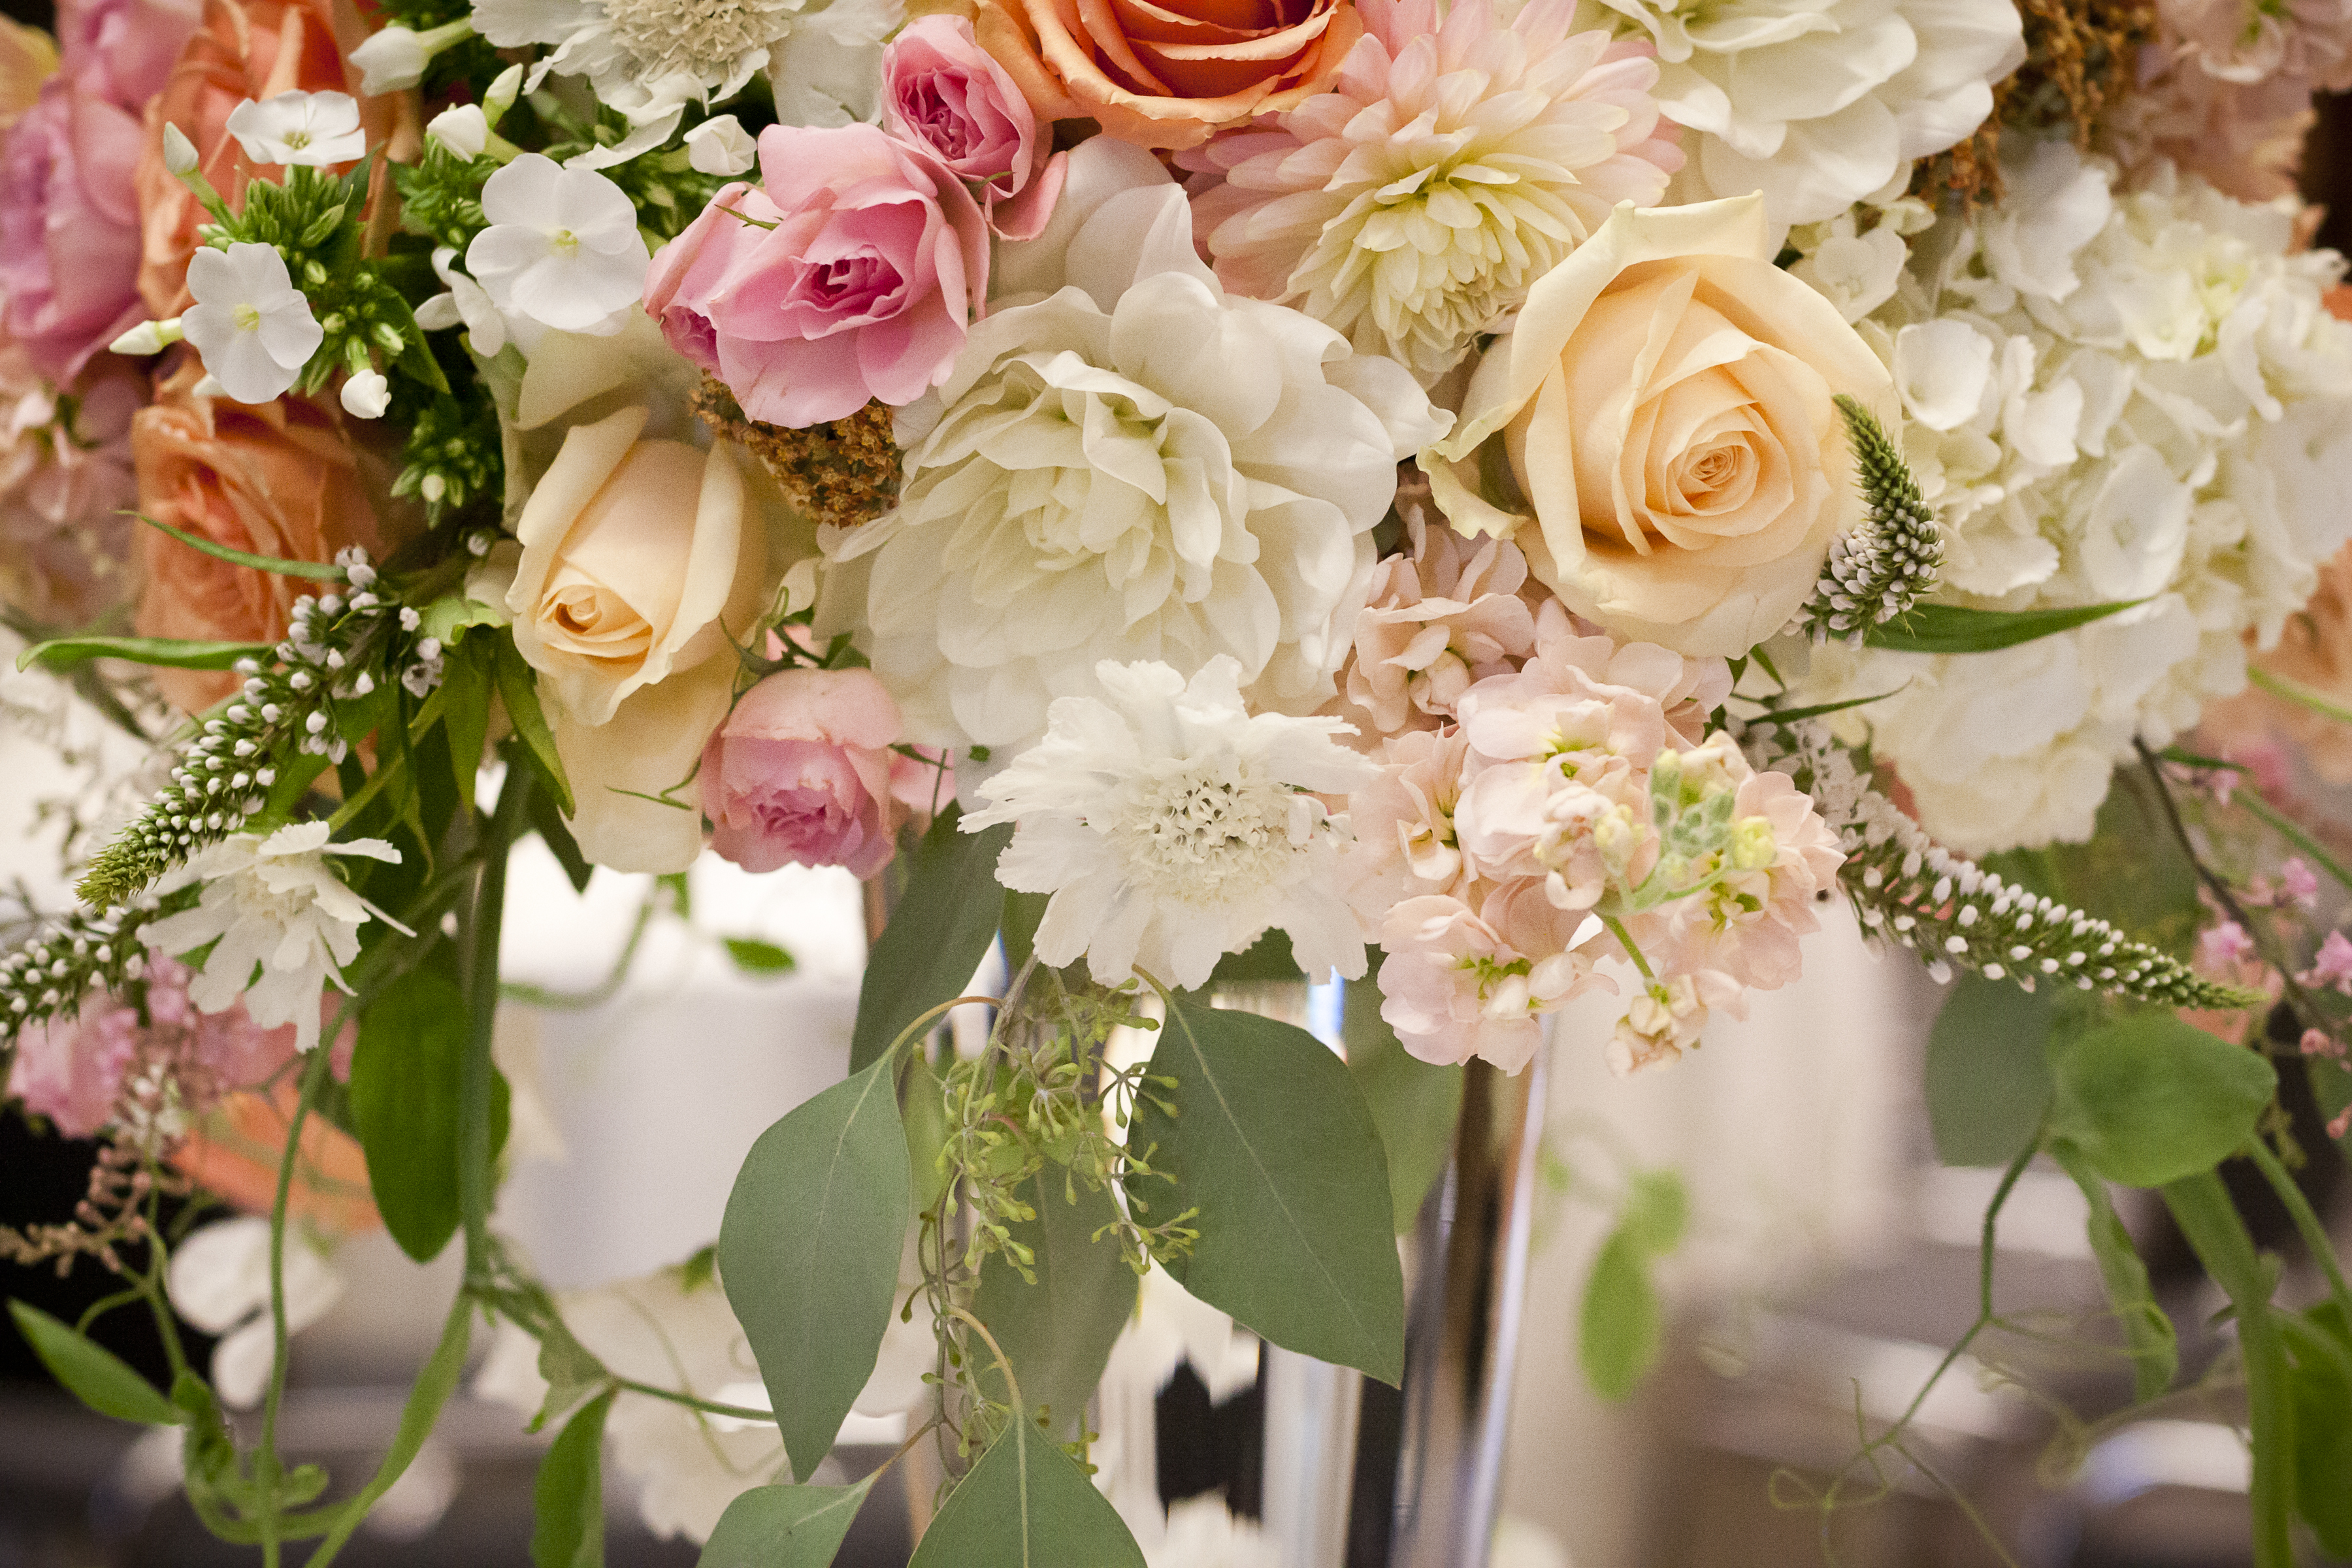 Romantic style wedding in peach pearl and blush tobey nelson white hydrangea and sweet peas image of wedding centerpiece with dahlia rose sweet pea and scabiosa mightylinksfo